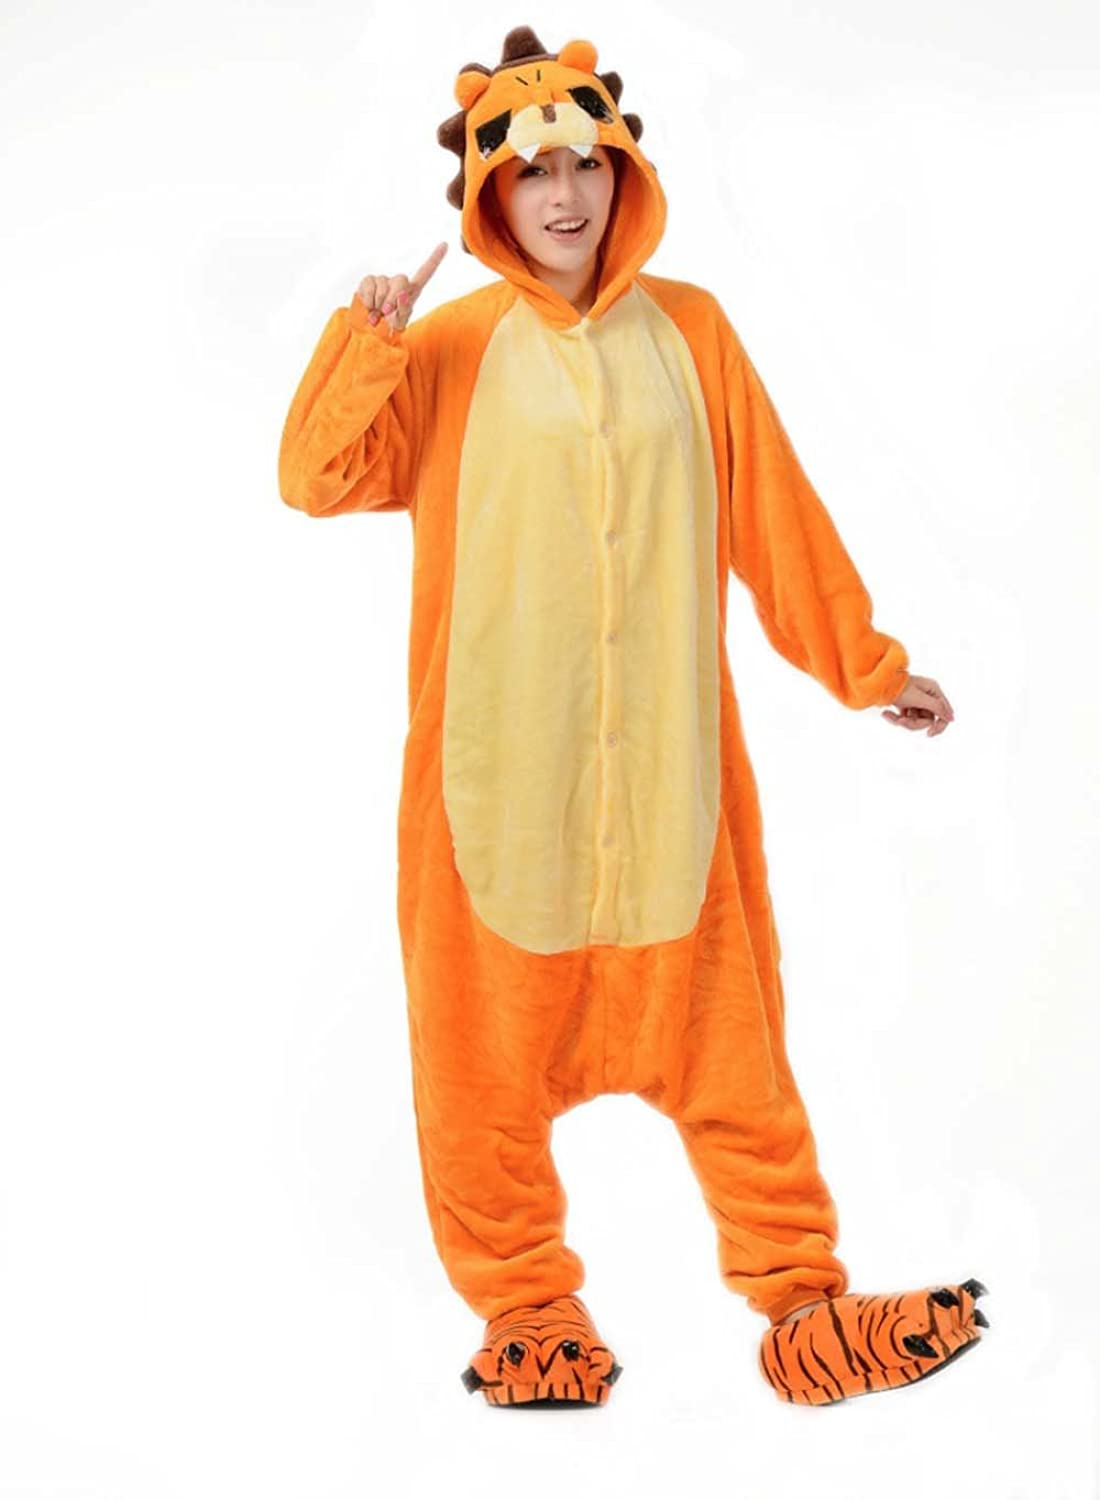 Unisex Adult Kigurumi Animal Cosplay Costume Novelty Pajamas Onesies Adult Anime Cartoon Party Christmas Halloween Costume